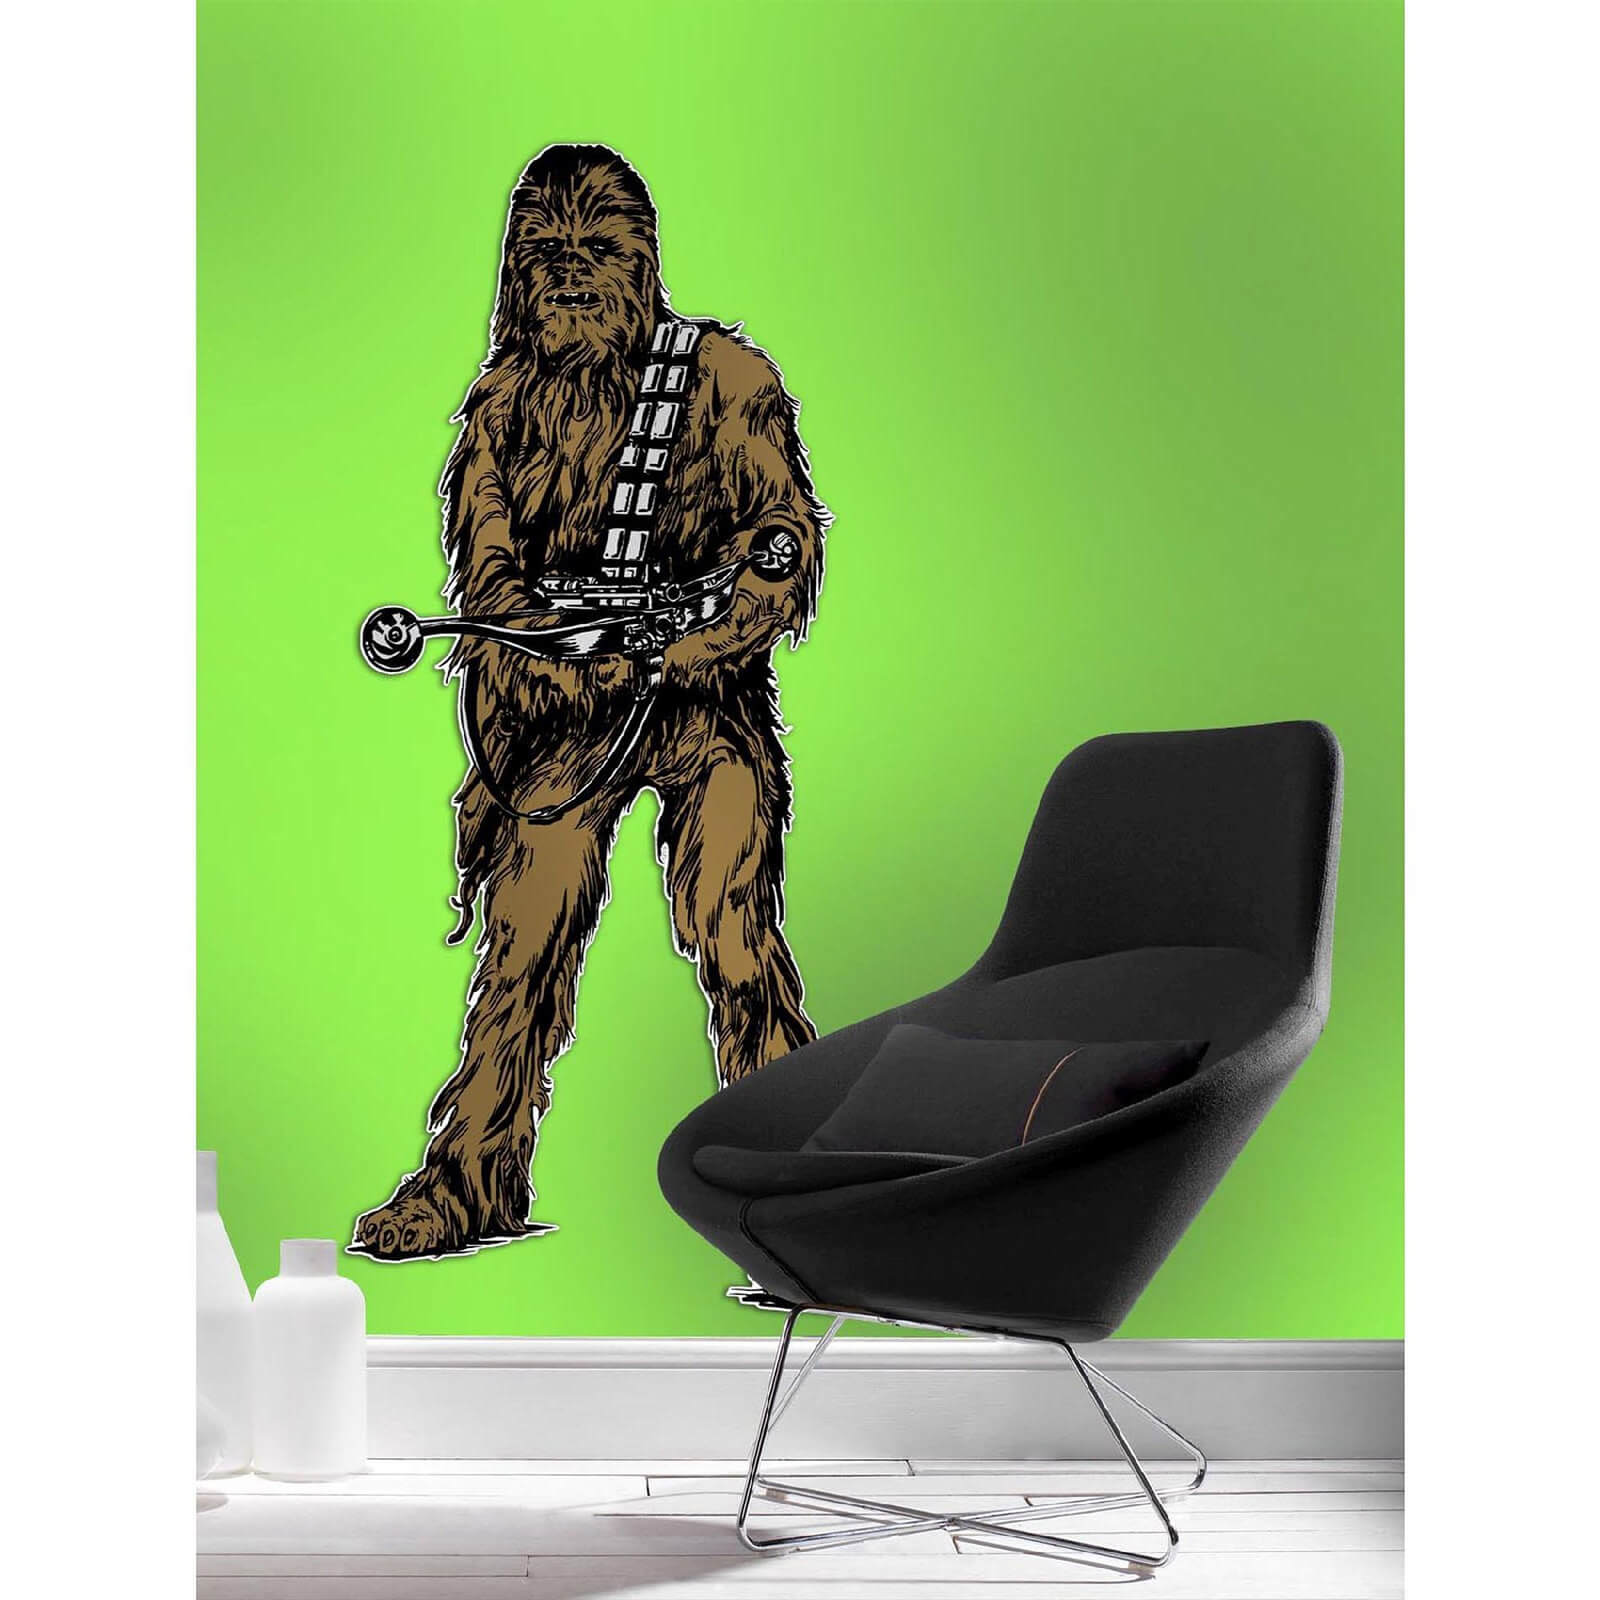 Star Wars Chewbacca Lifesize Wall Sticker